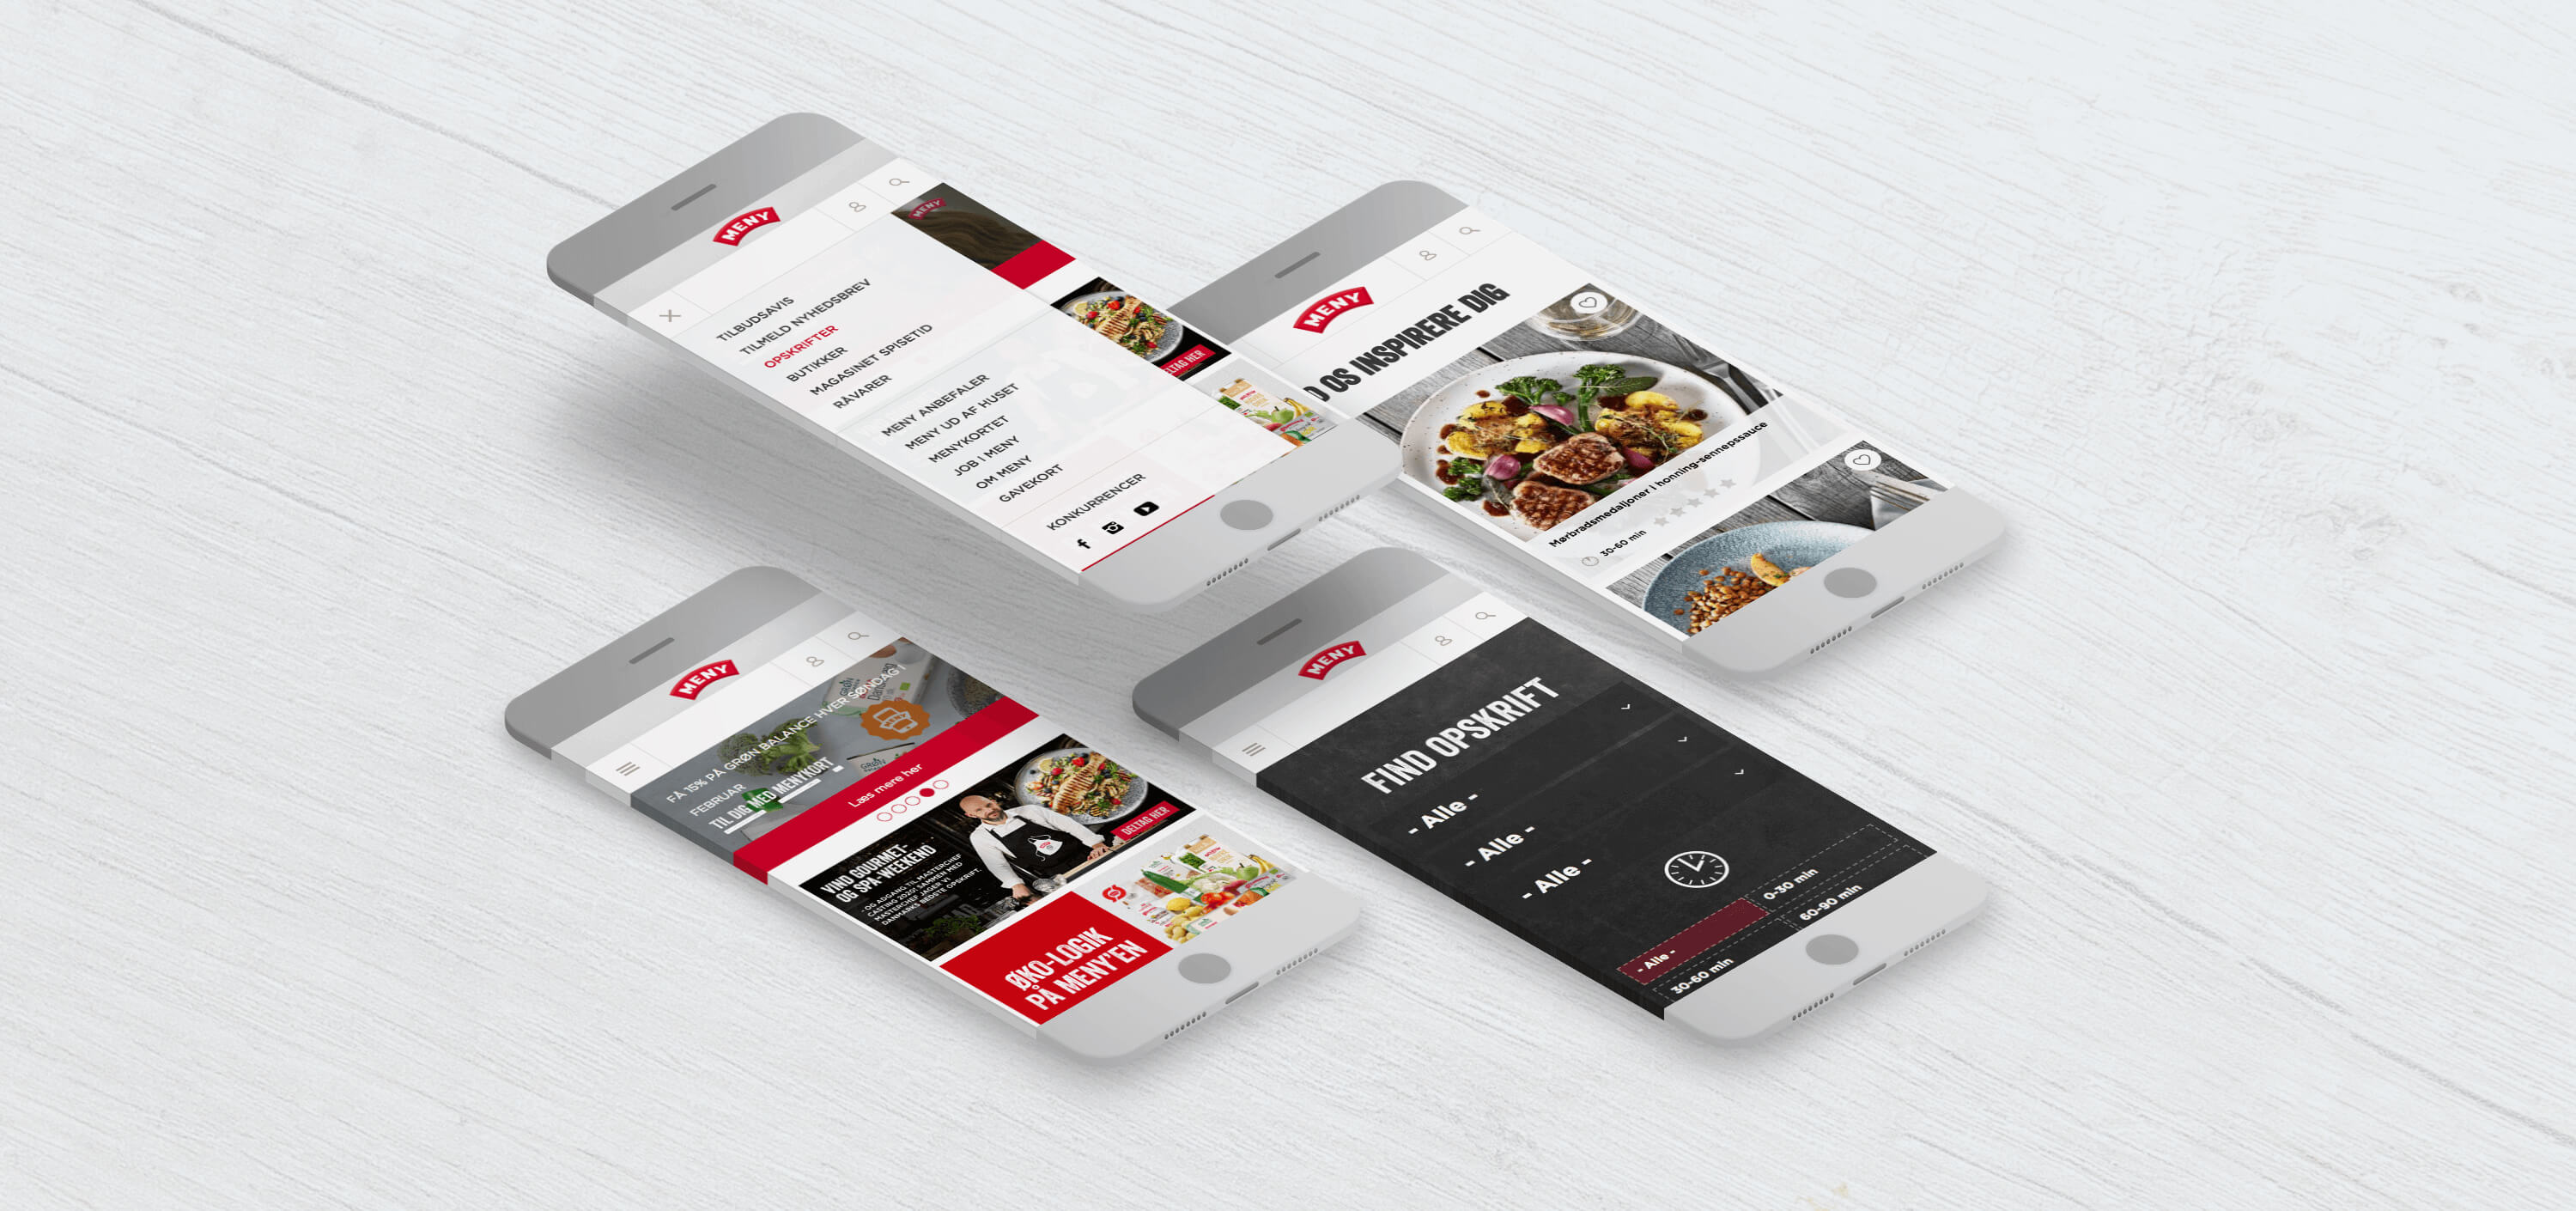 Image of Meny mobile design